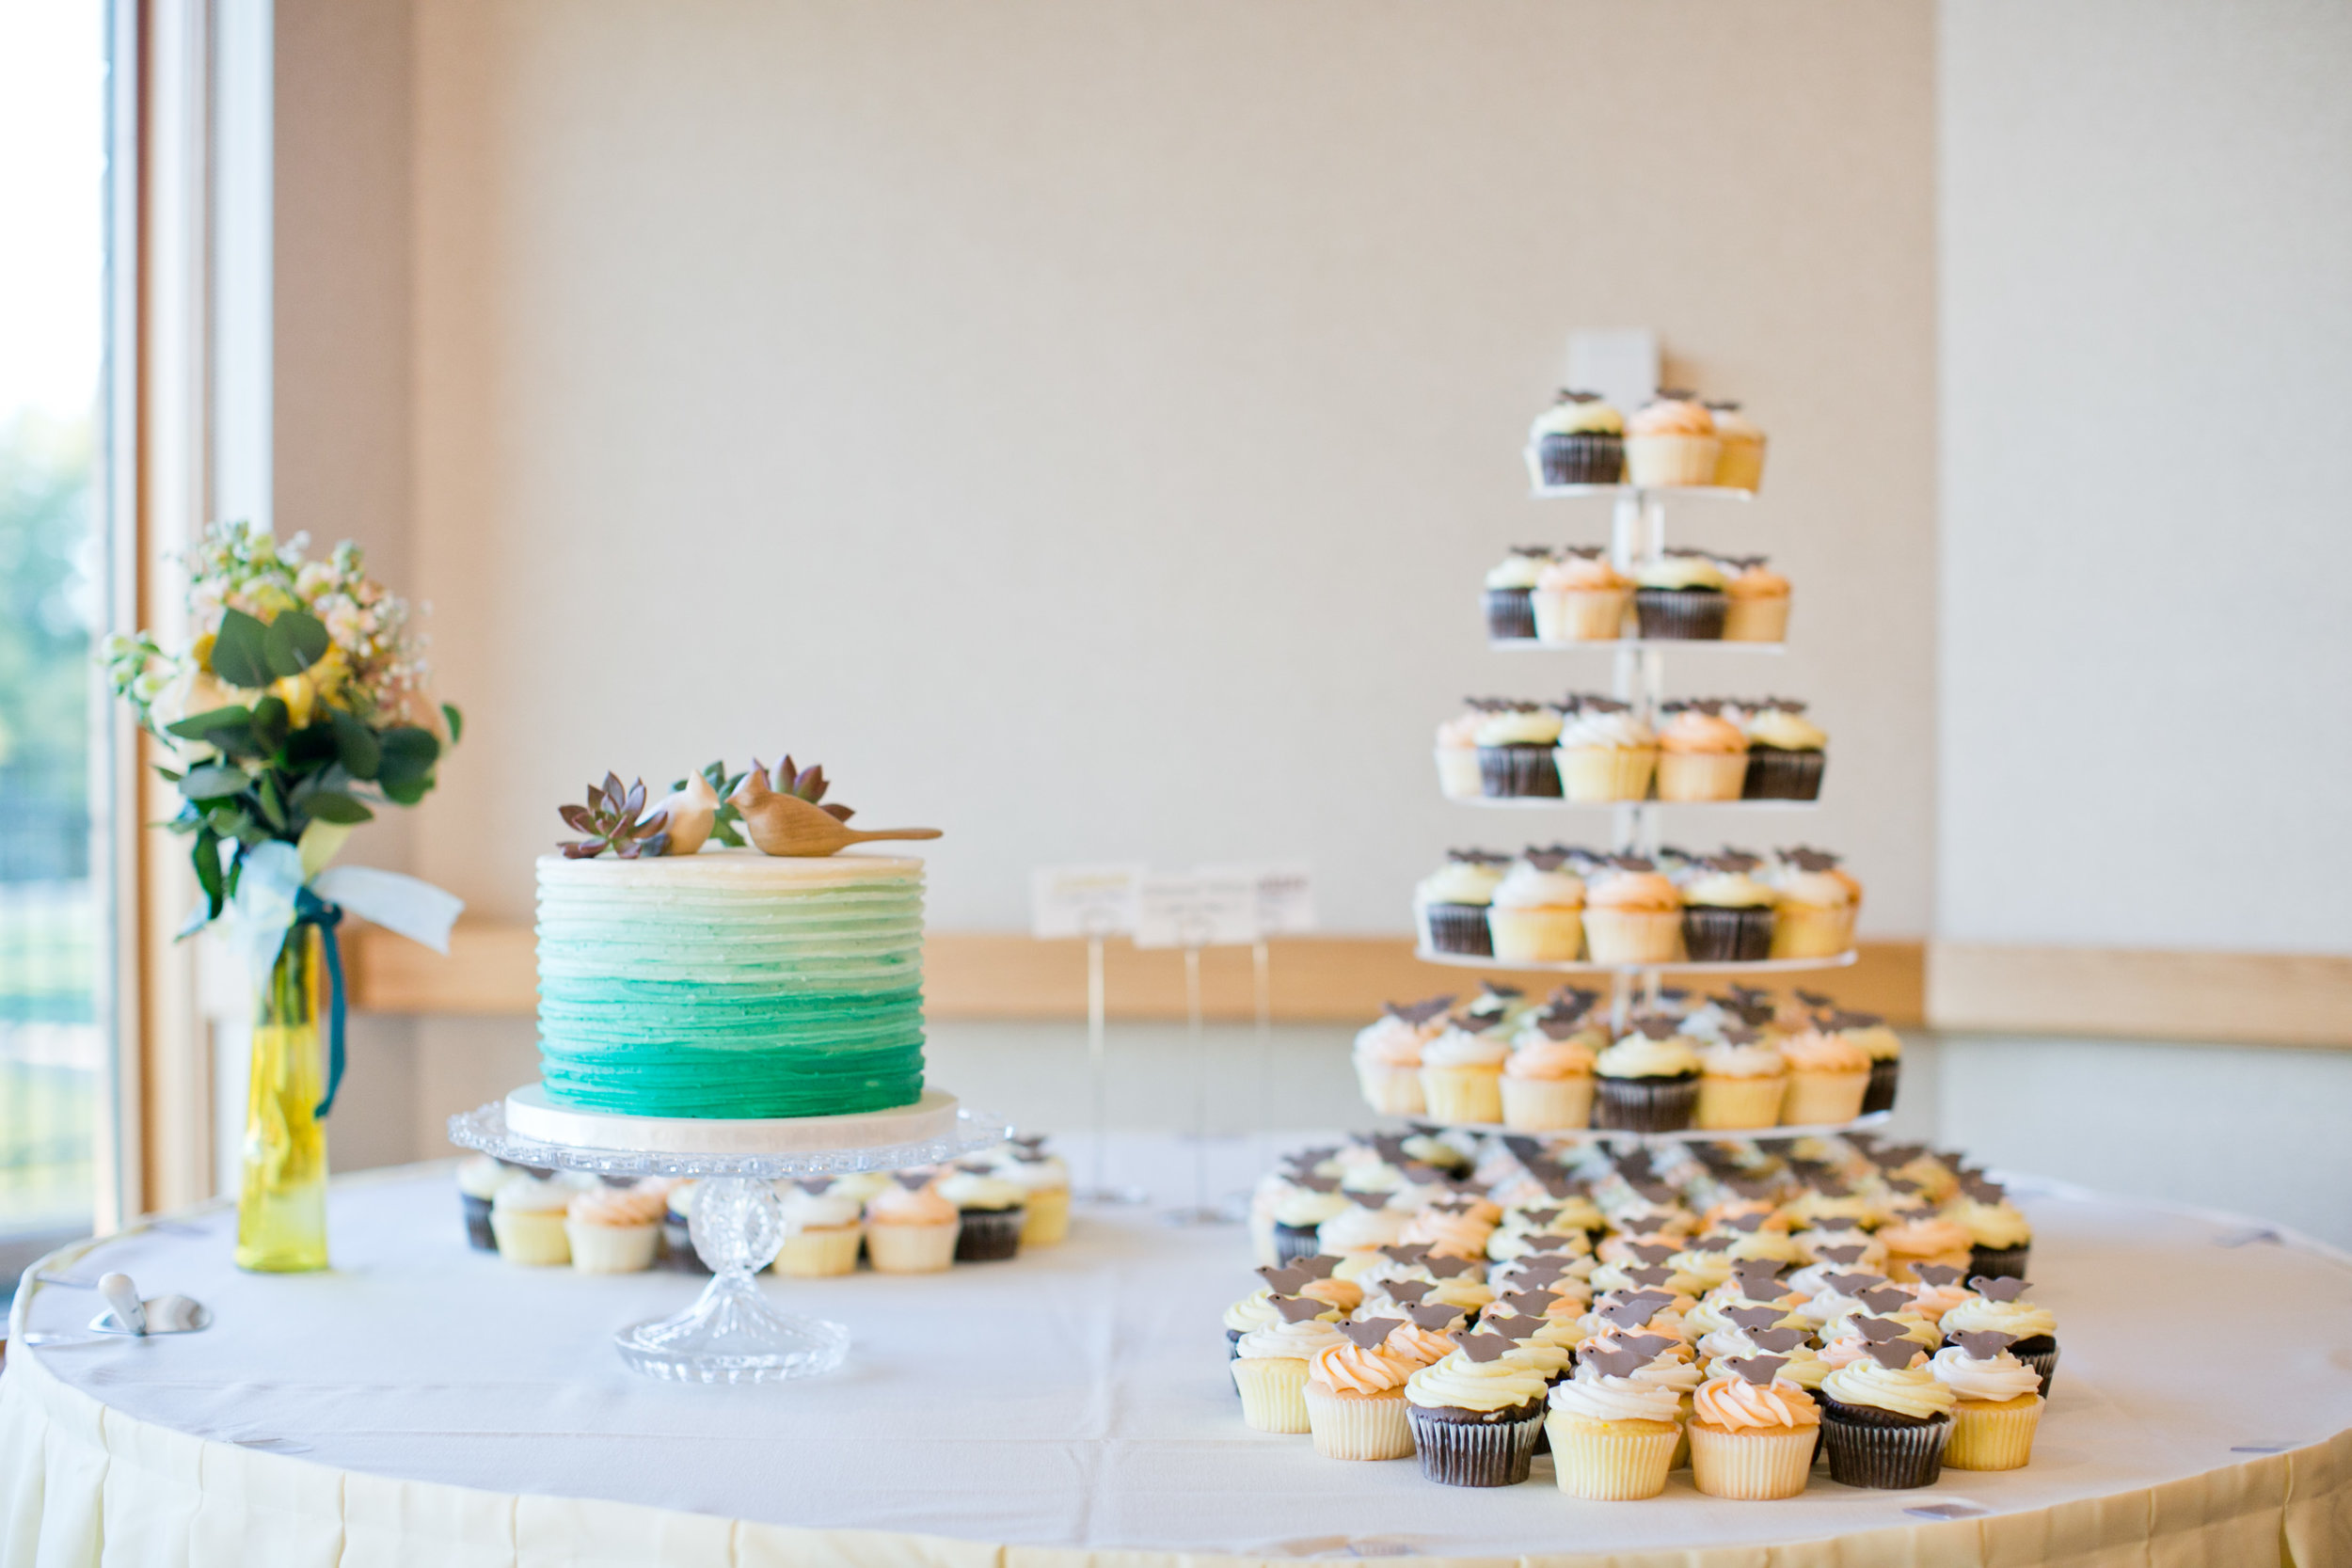 I loved photographing this beautiful wedding at Plymouth Creek Center